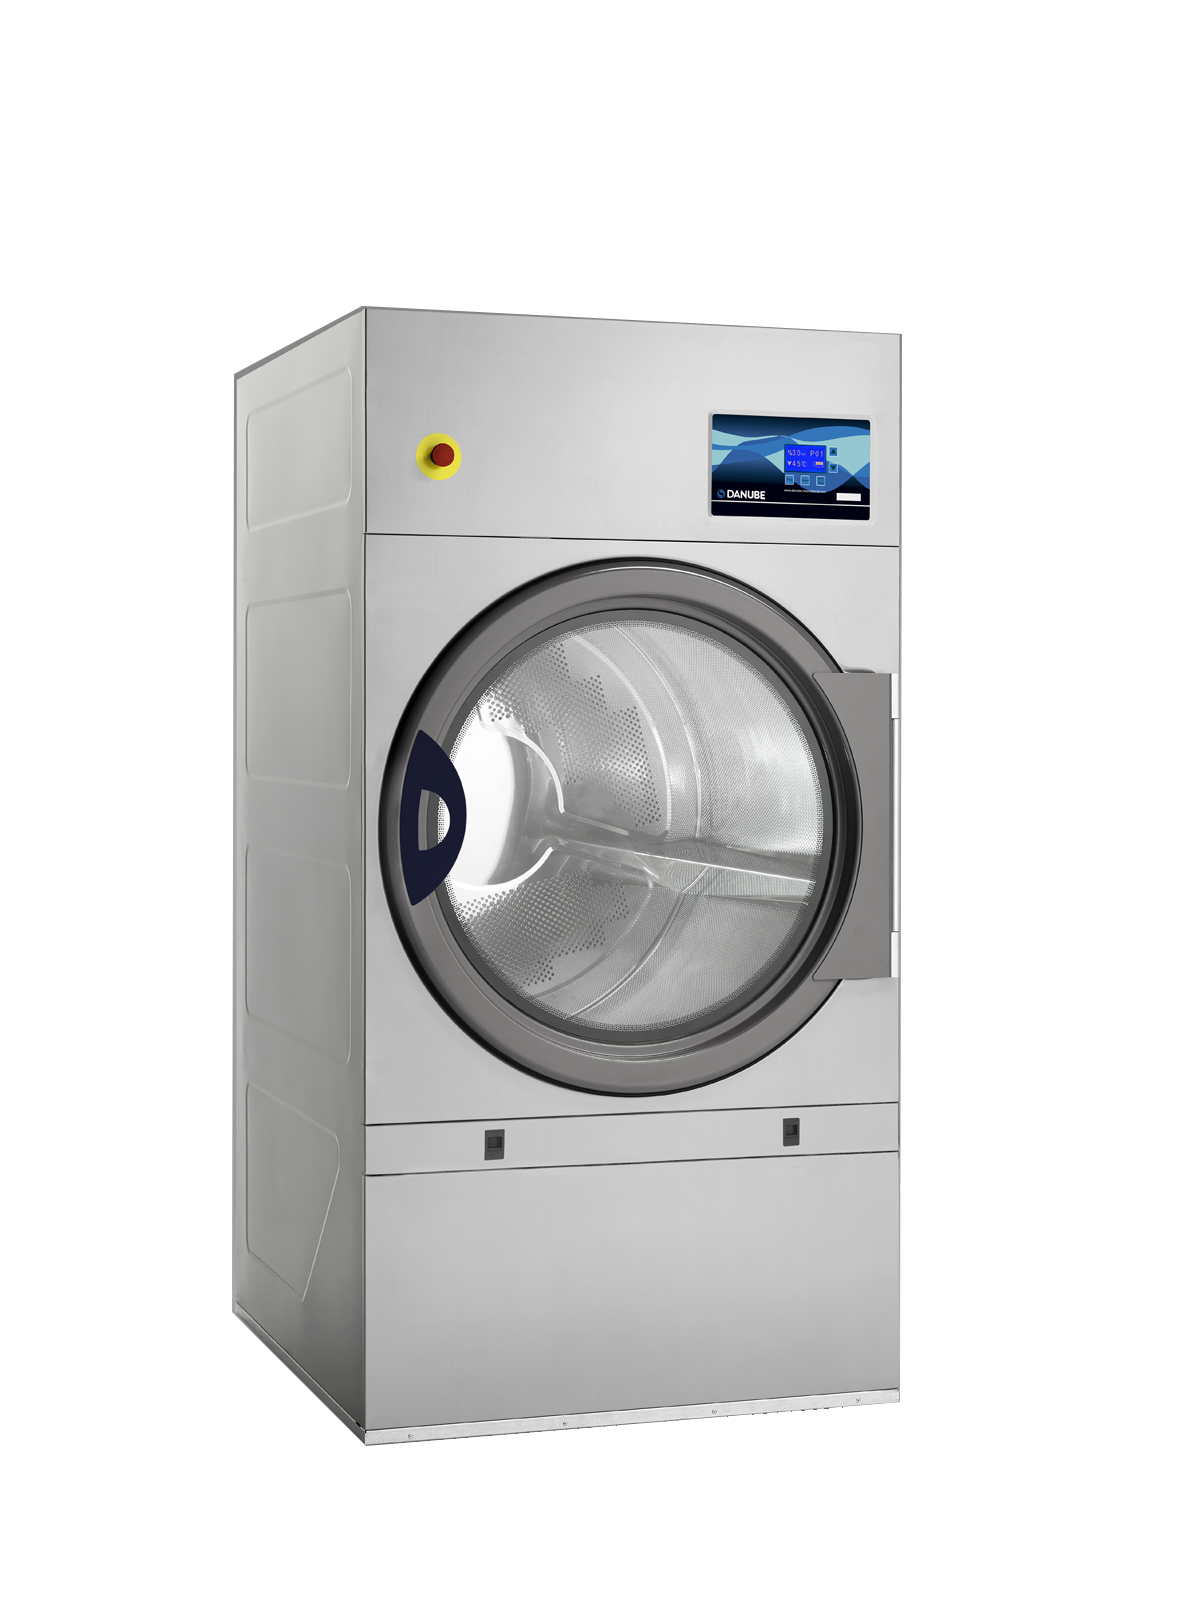 Dryer drawing appliance. Danube international sustainable laundry